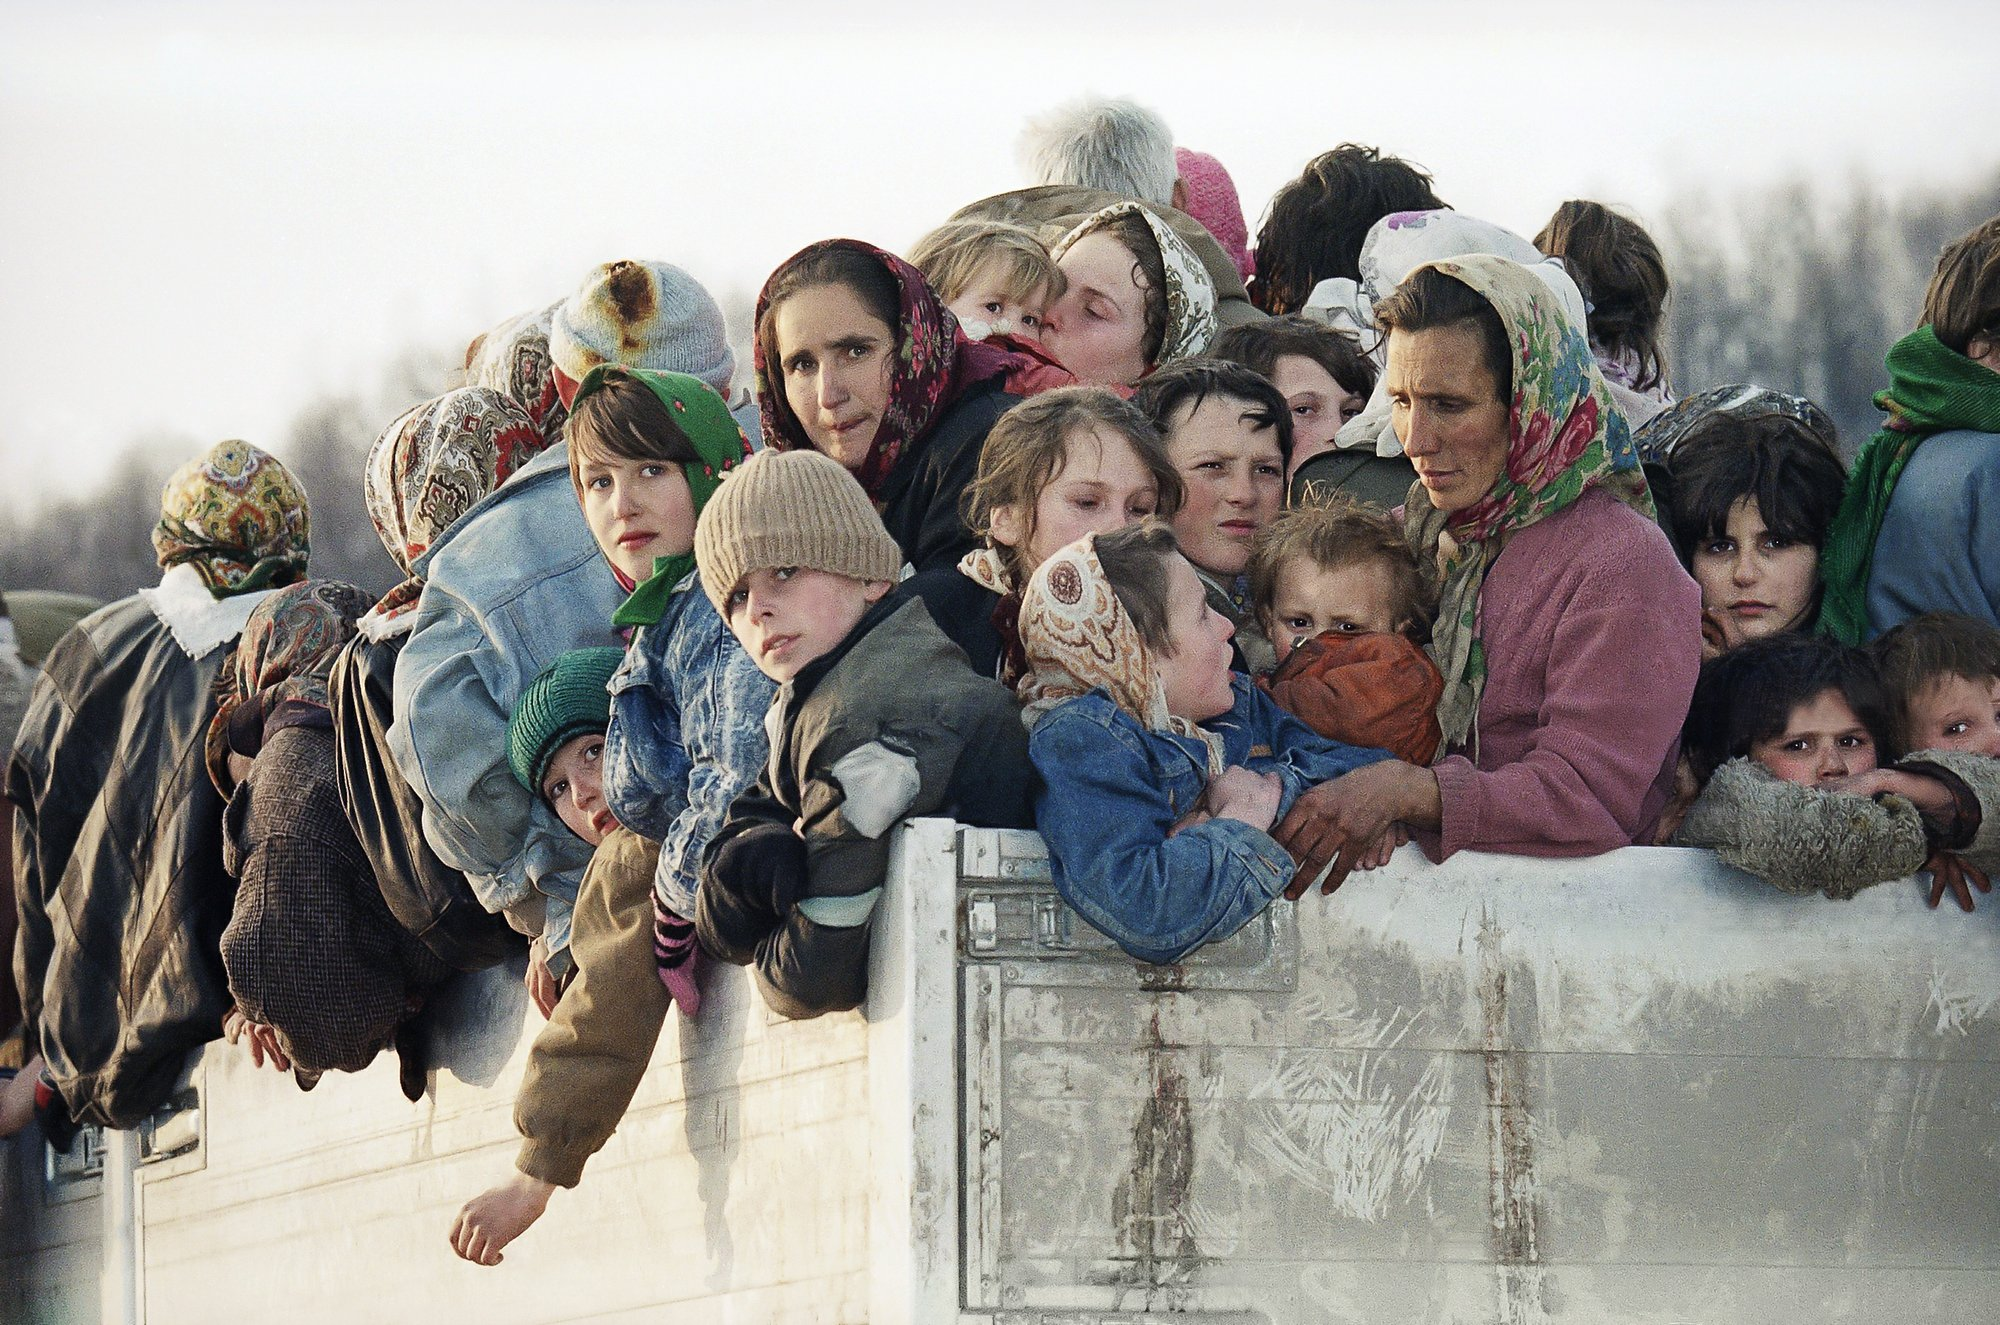 FILE- In this Monday, March 29, 1993 file picture evacuees from the besieged Muslim enclave of Srebrenica, packed on a truck en route to Tuzla, pass through Tojsici.  Survivors of the genocide in the eastern Bosnian town of Srebrenica, mainly women, will on Saturday July 11, 2020, commemorate the 25th anniversary of the slaughter of their fathers and brothers, husbands and sons.  At least 8,000 mostly Muslim men and boys were chased through woods in and around Srebrenica by Serb troops in what is considered the worst carnage of civilians in Europe since World War II. The slaughter was also the only atrocity of the brutal war that has been confirmed an act of genocide.(AP Photo/Michel Euler, File)